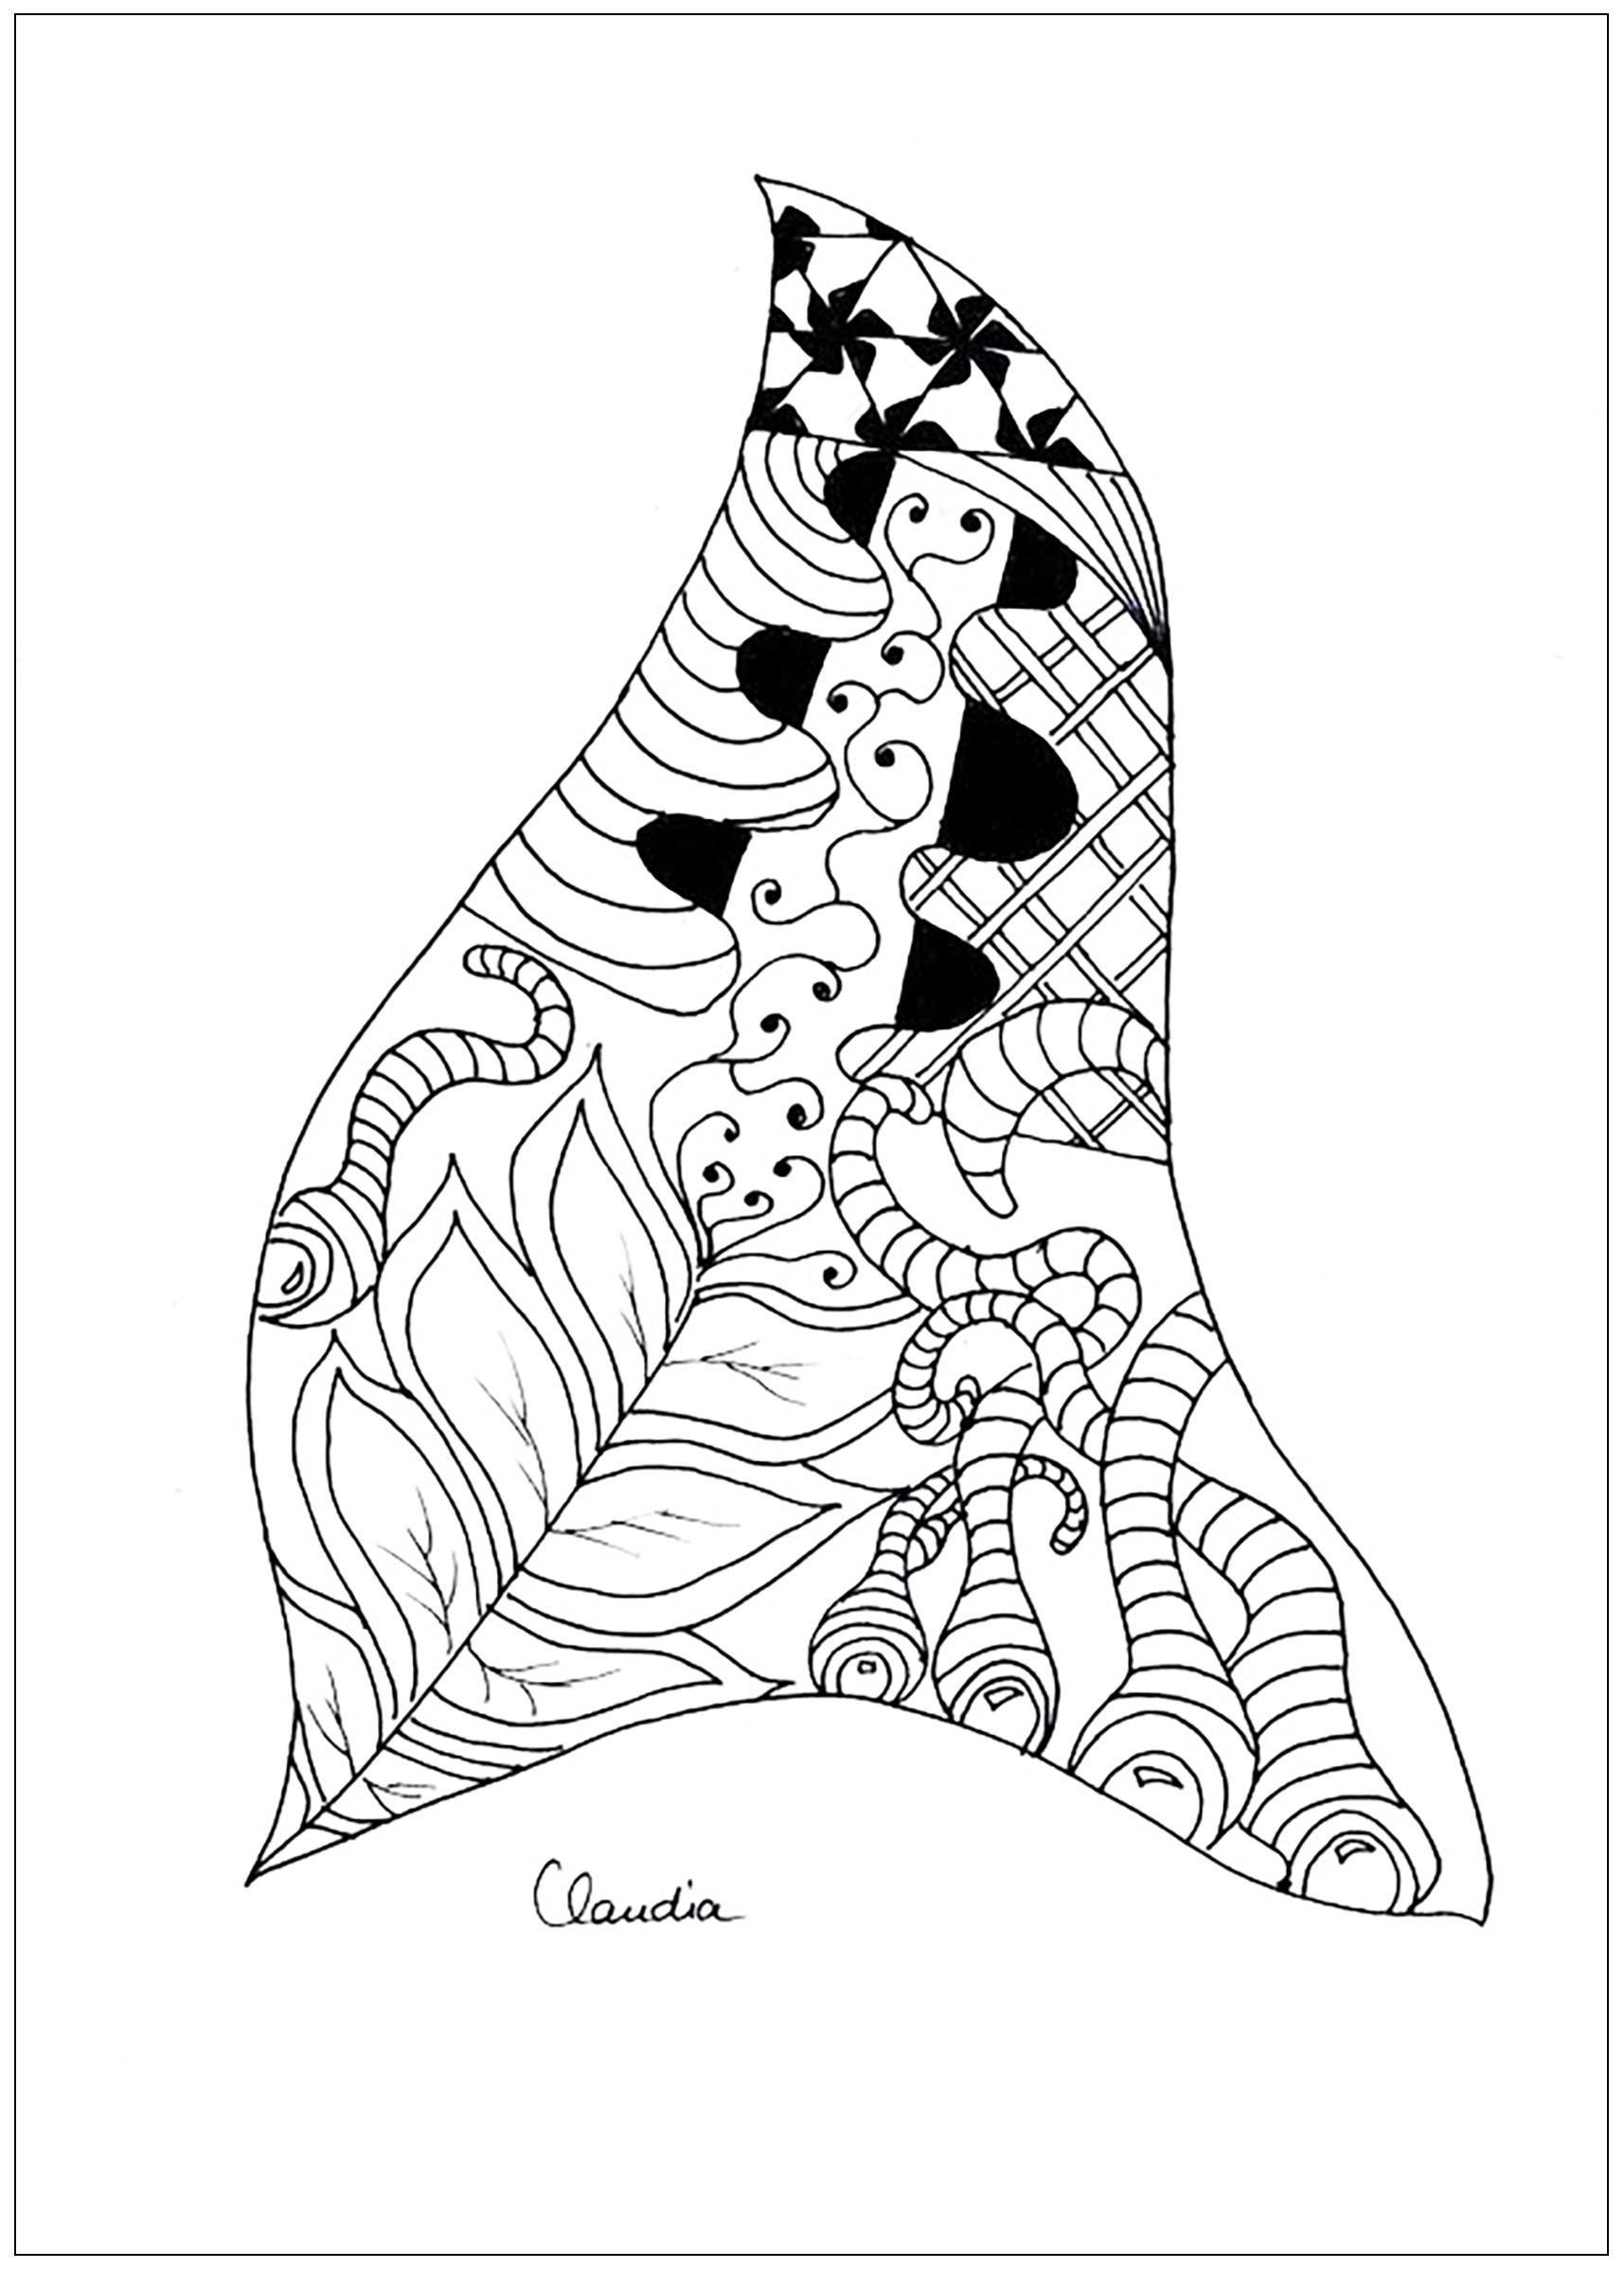 Zentangle simple - Zentangle Adult Coloring Pages - Page 3